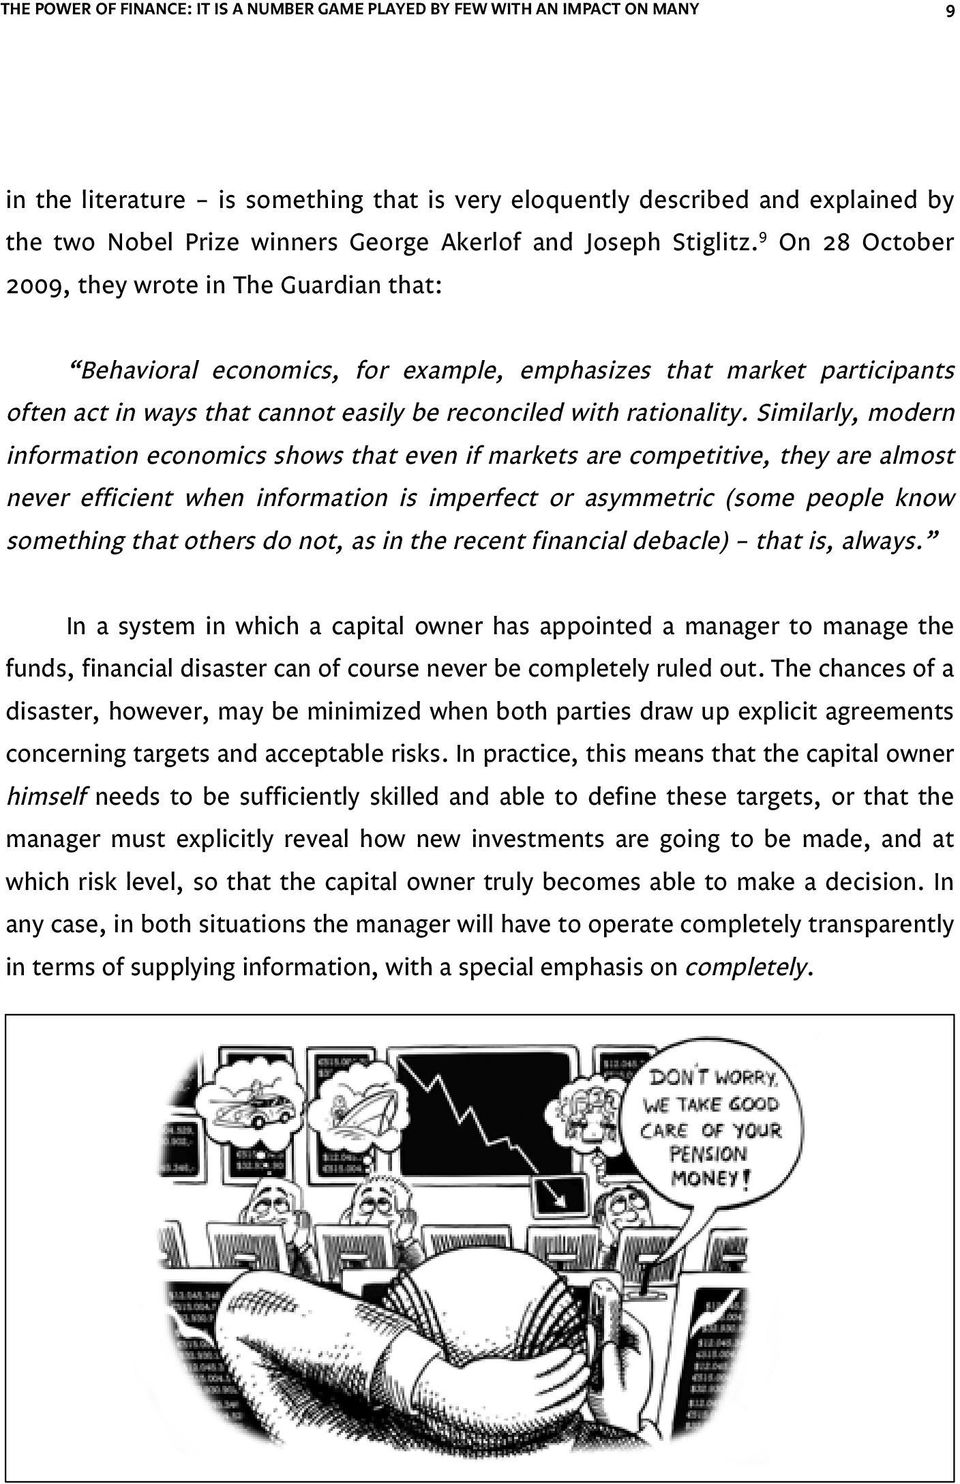 9 On 28 October 2009, they wrote in The Guardian that: Behavioral economics, for example, emphasizes that market participants often act in ways that cannot easily be reconciled with rationality.